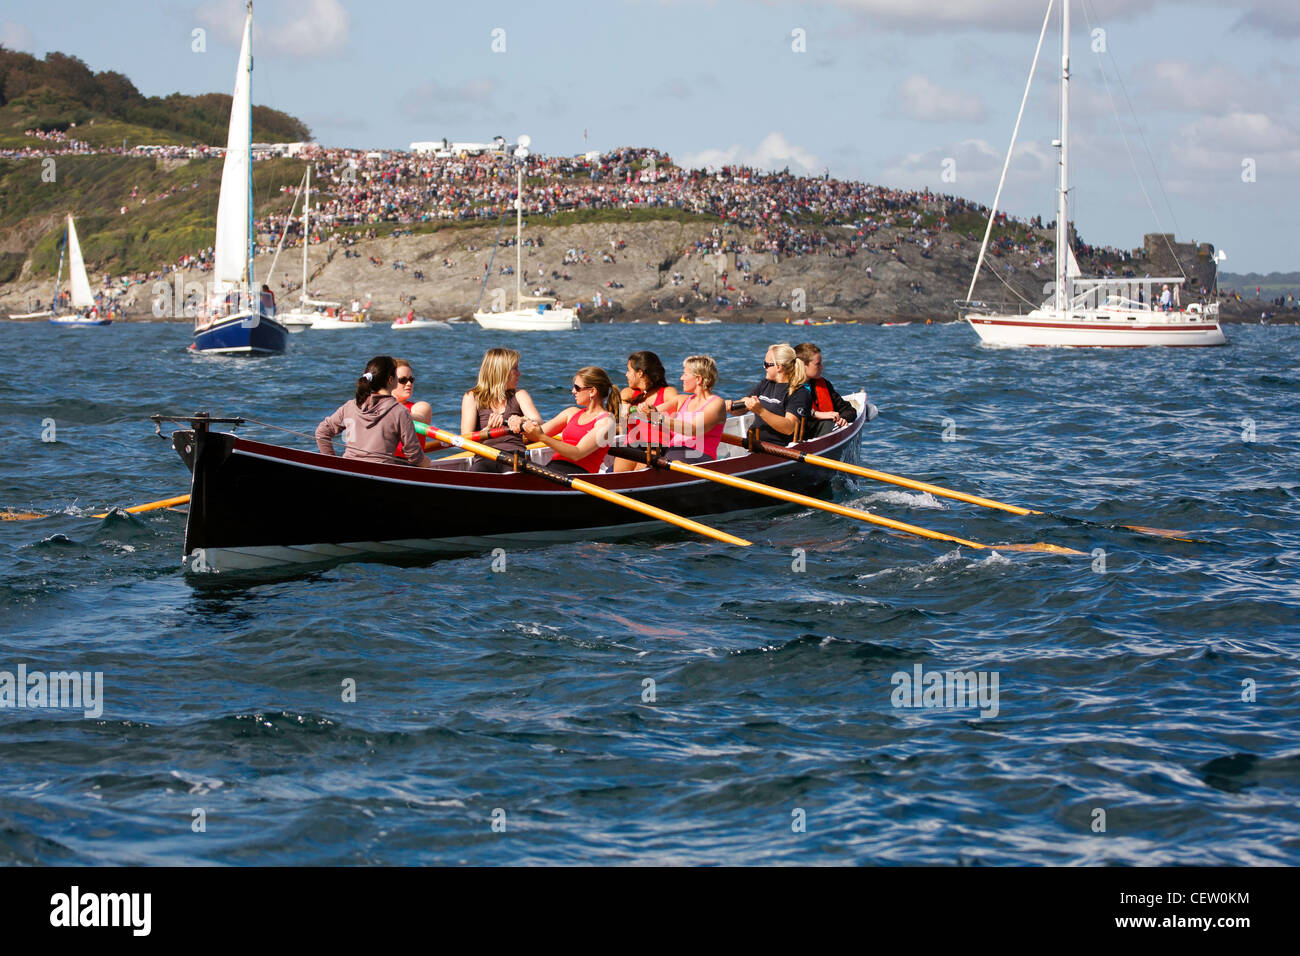 A ladies team of gig rowers, row a pilot gig ashore after a regatta - Stock Image